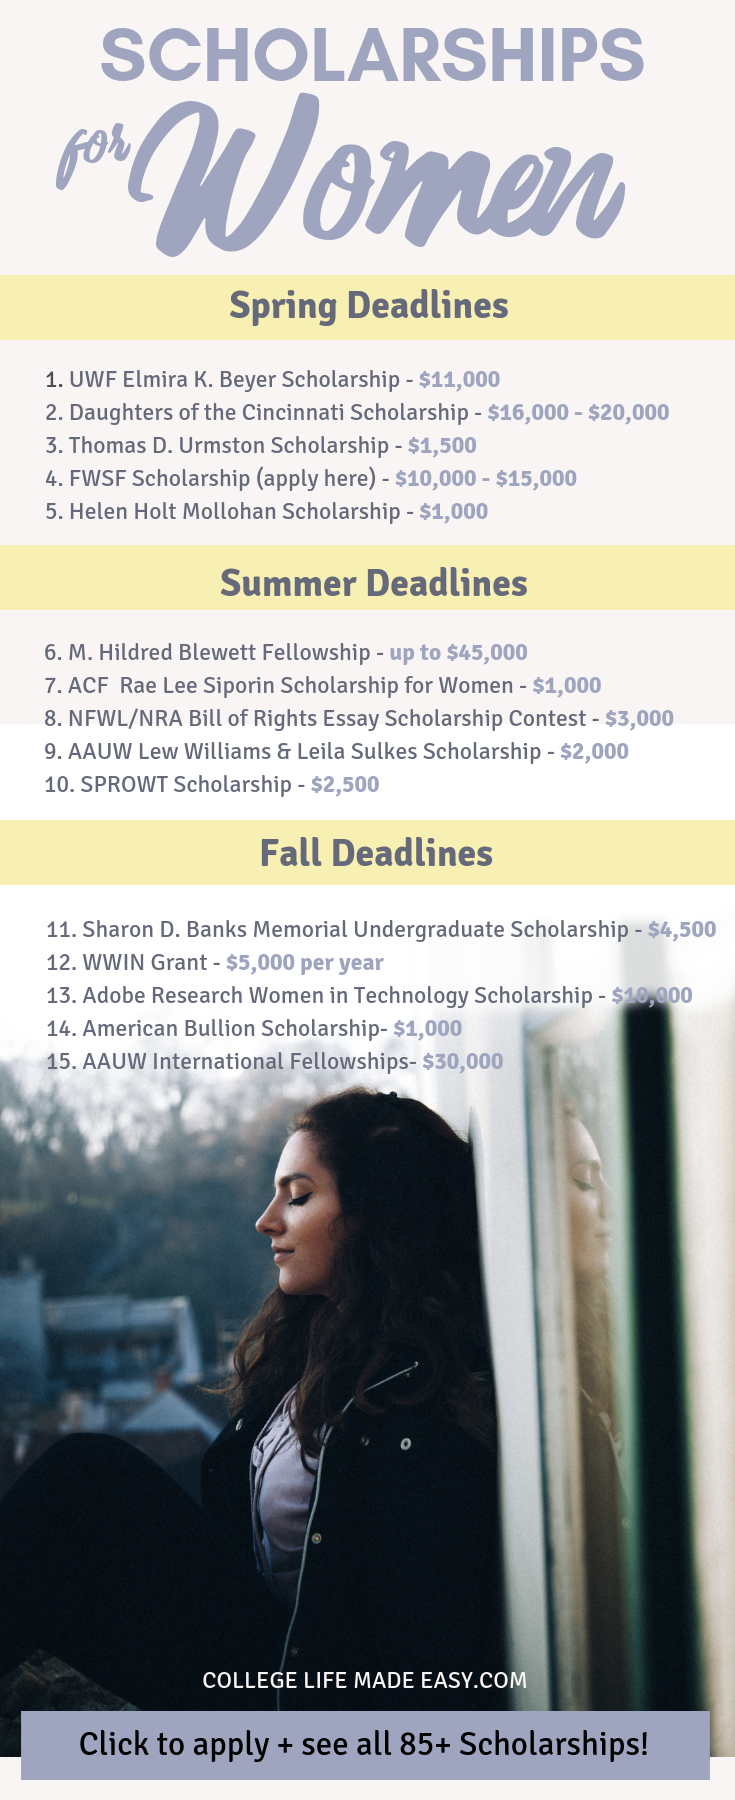 College scholarships for women, 85+ opportunities to win awards for school in 2019! This article lists scholarships for women in all walks of study and life. Click to start applying! #college #collegelife #student #scholarship #scholarships